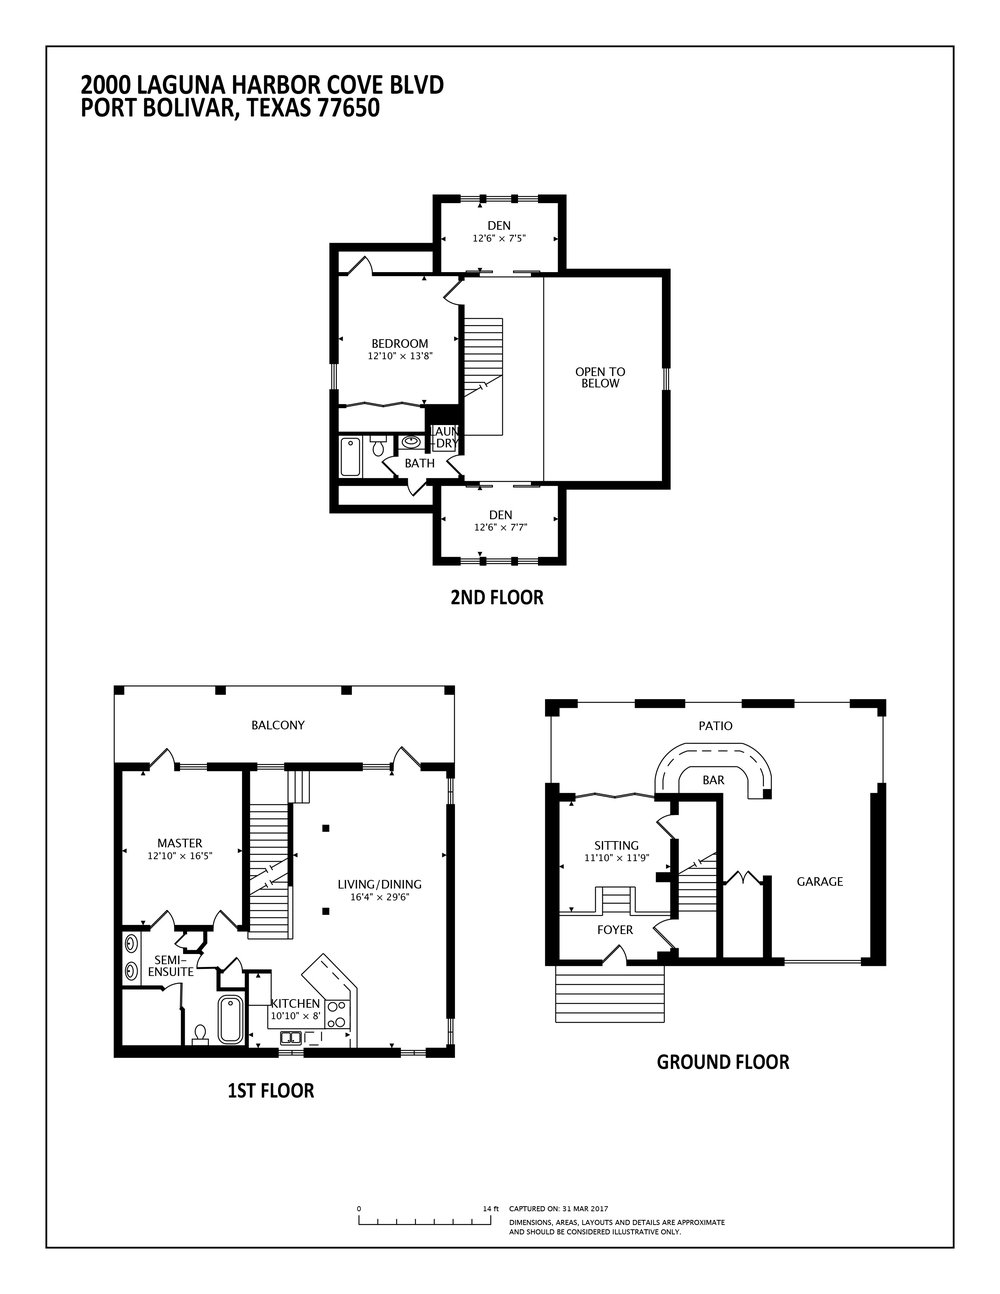 2000-LH-Cove---Floor-Plan---FINAL.jpg